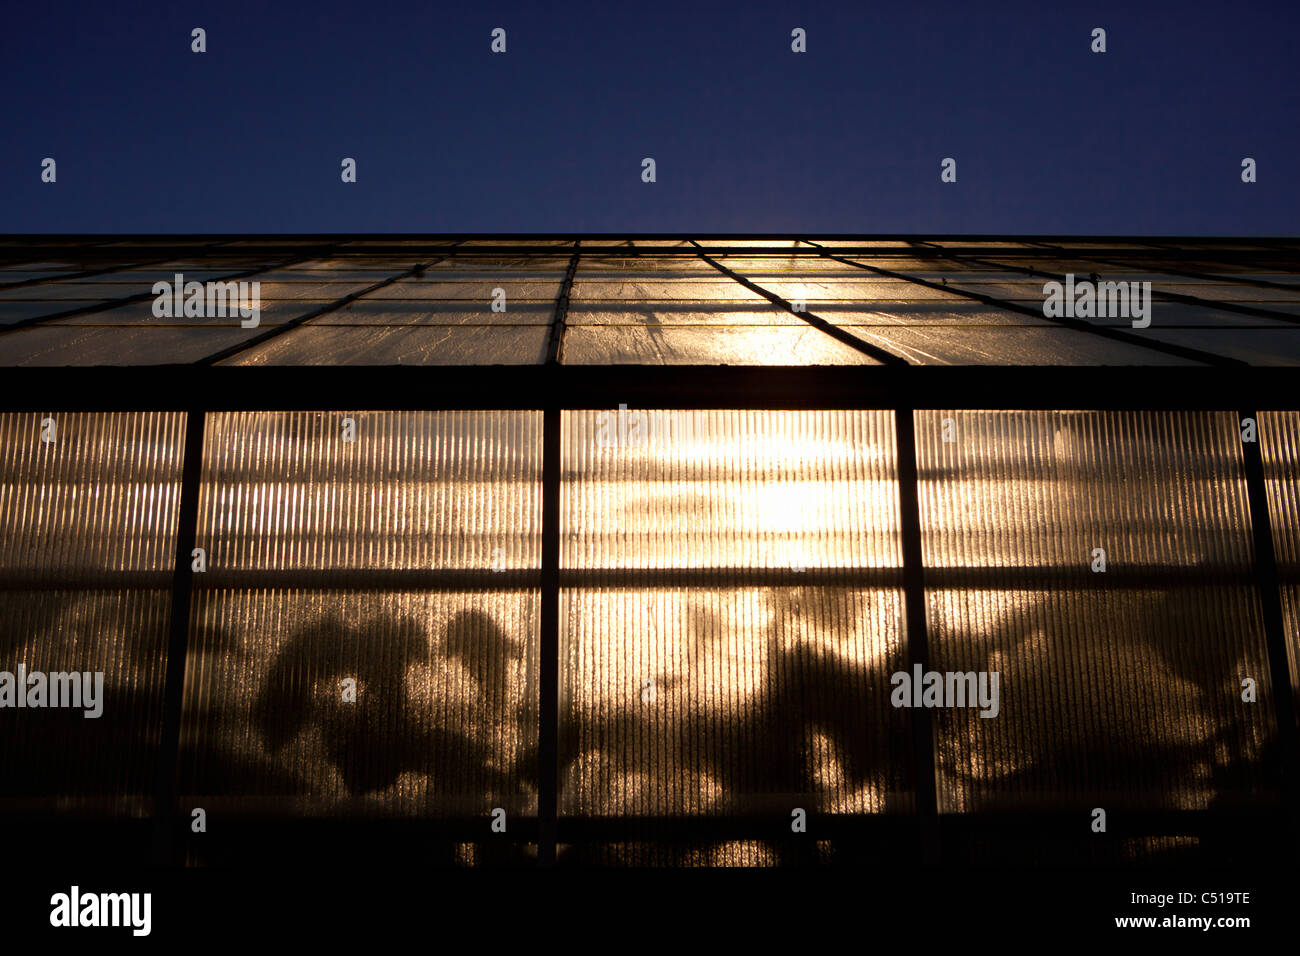 Peering into a greenhouse's opaque glass window and recognizing the shadow and outline of leaves - Stock Image